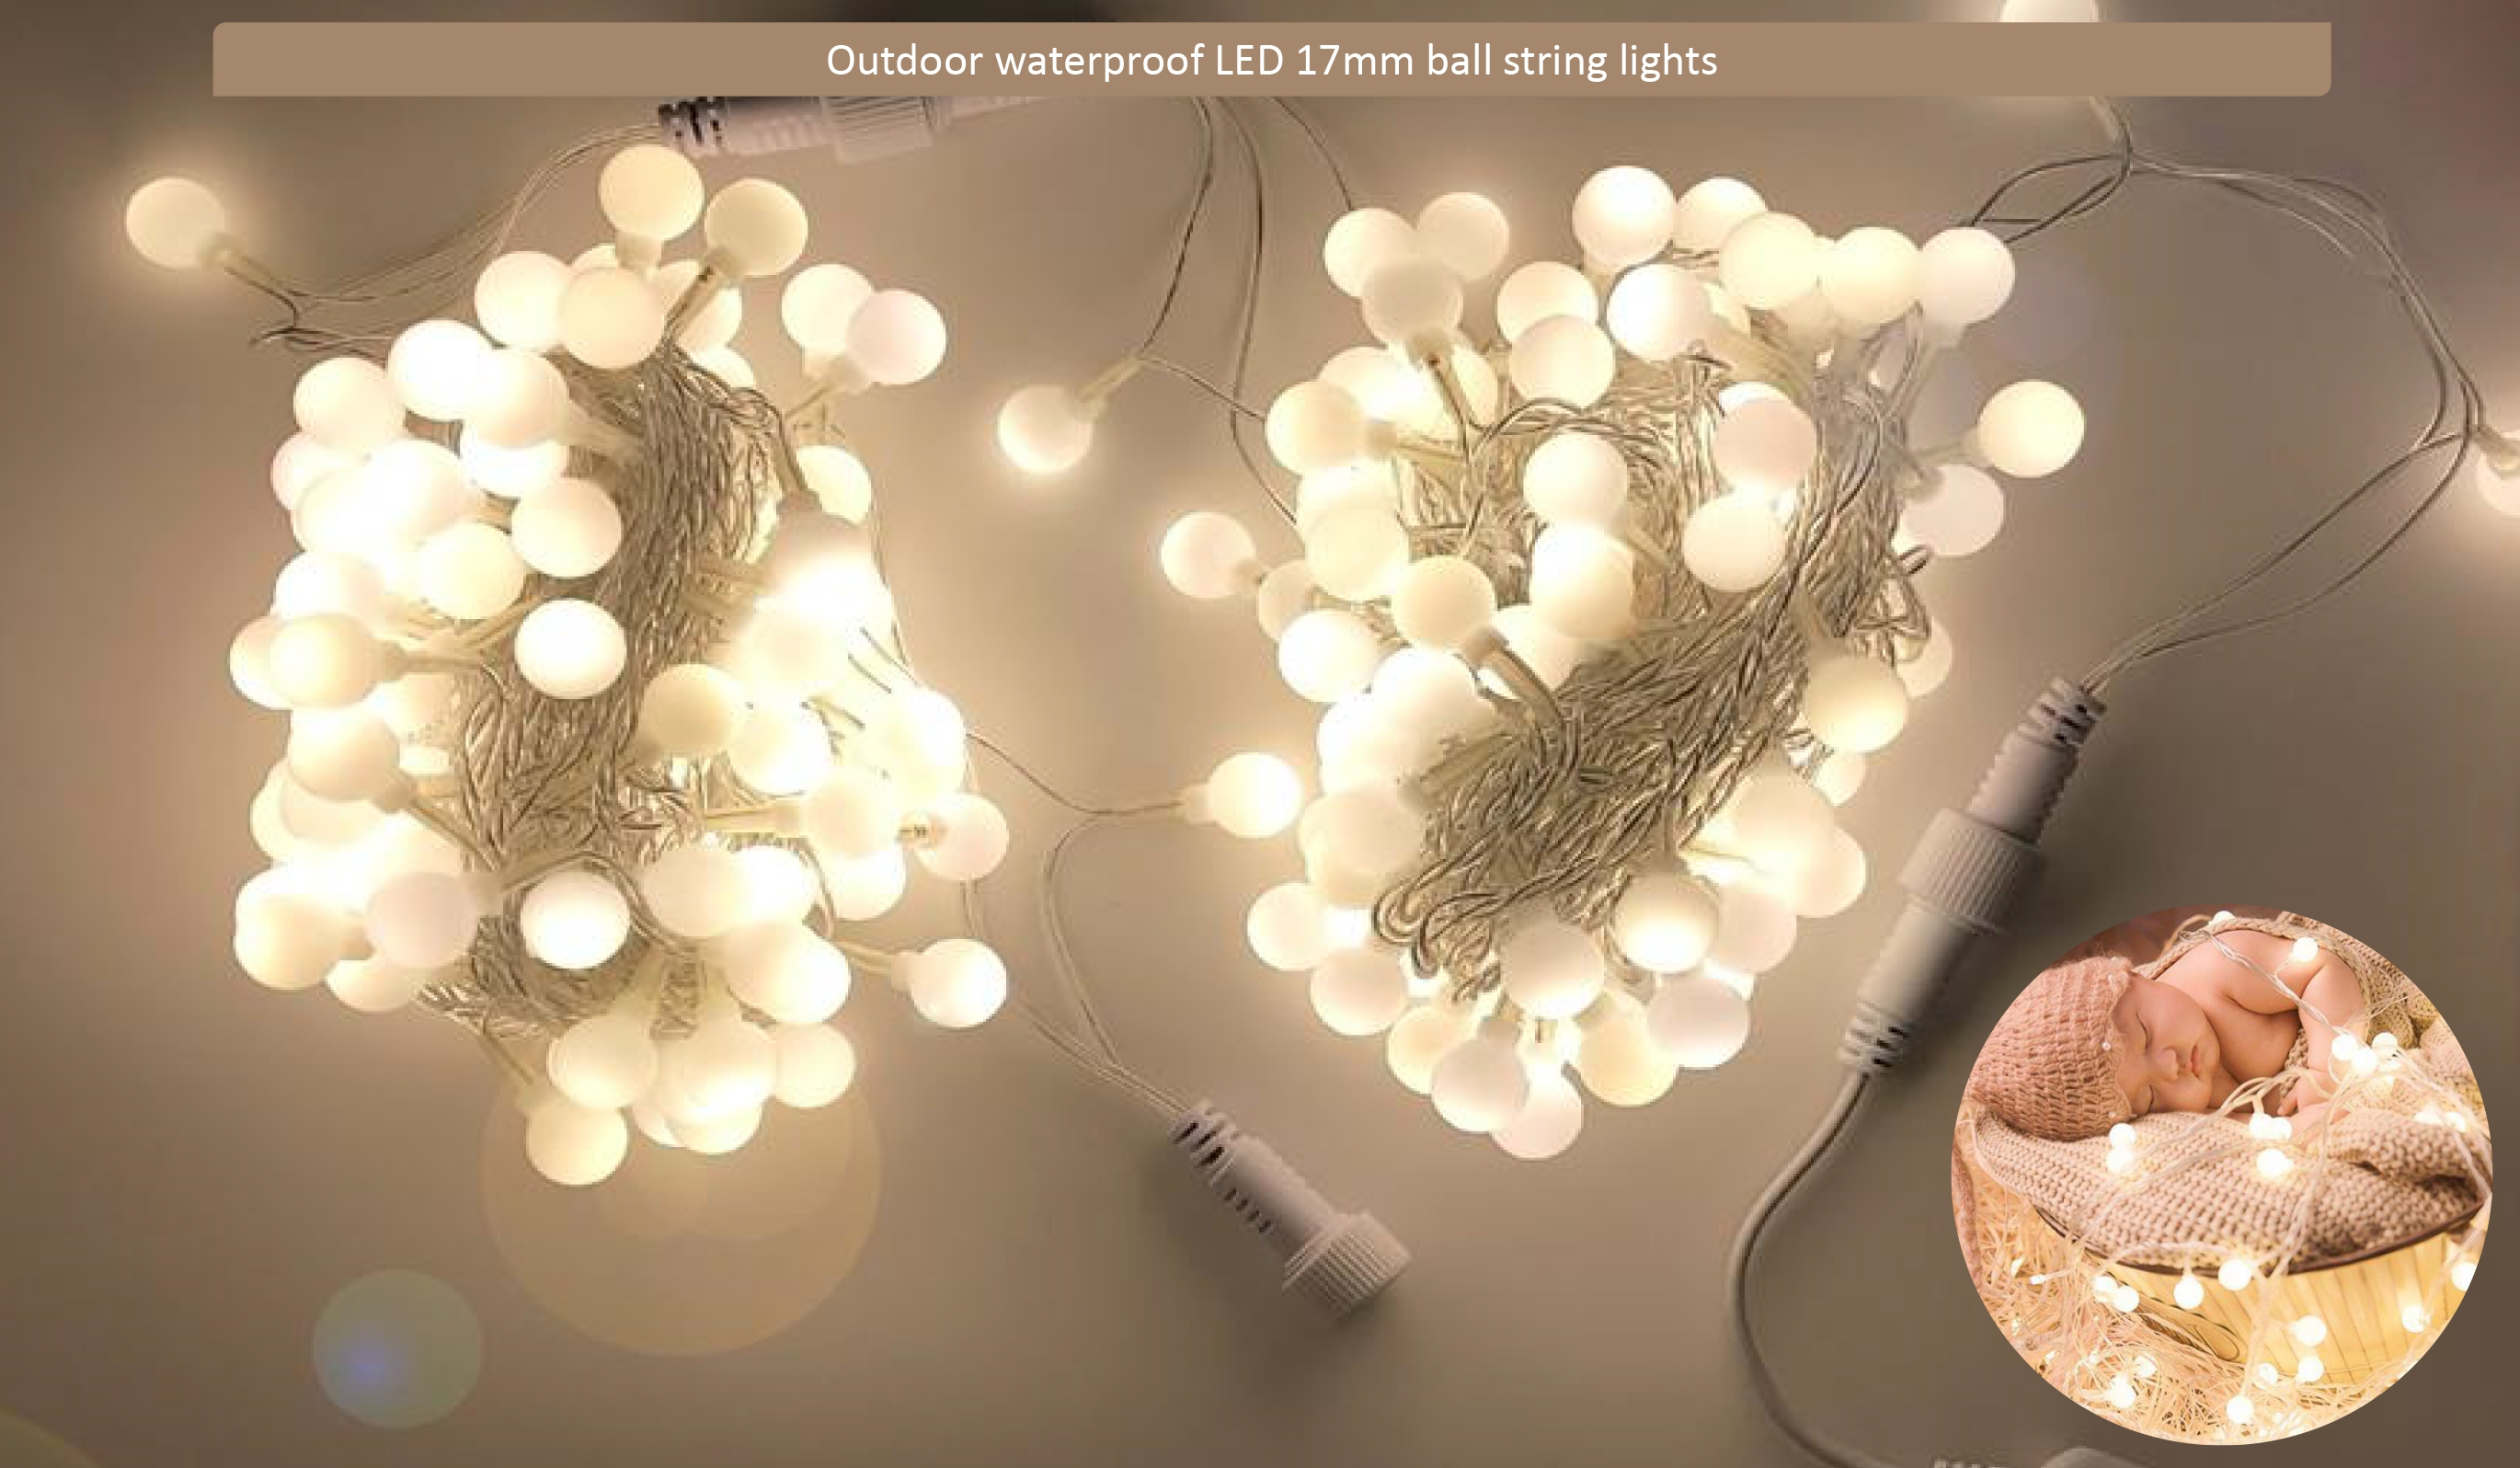 Happy Birthday Party Home Roomตกแต่งสีสัน 17 มม.Led PE Ball String Light